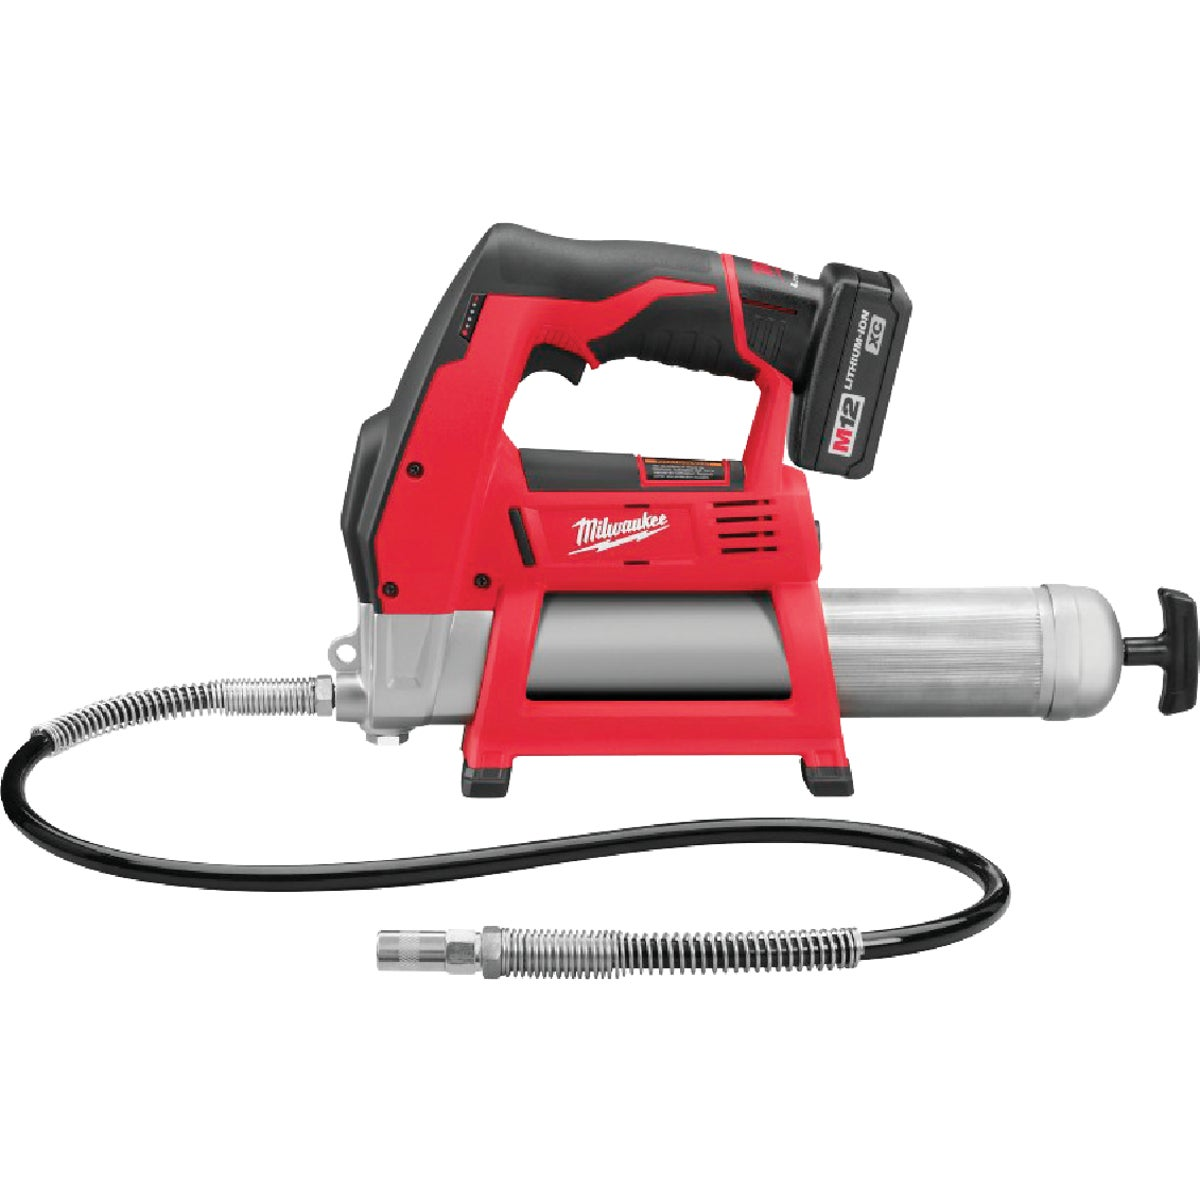 CRDLS M12 12V GREASE GUN - 244621XC by Milwaukee Elec Tool